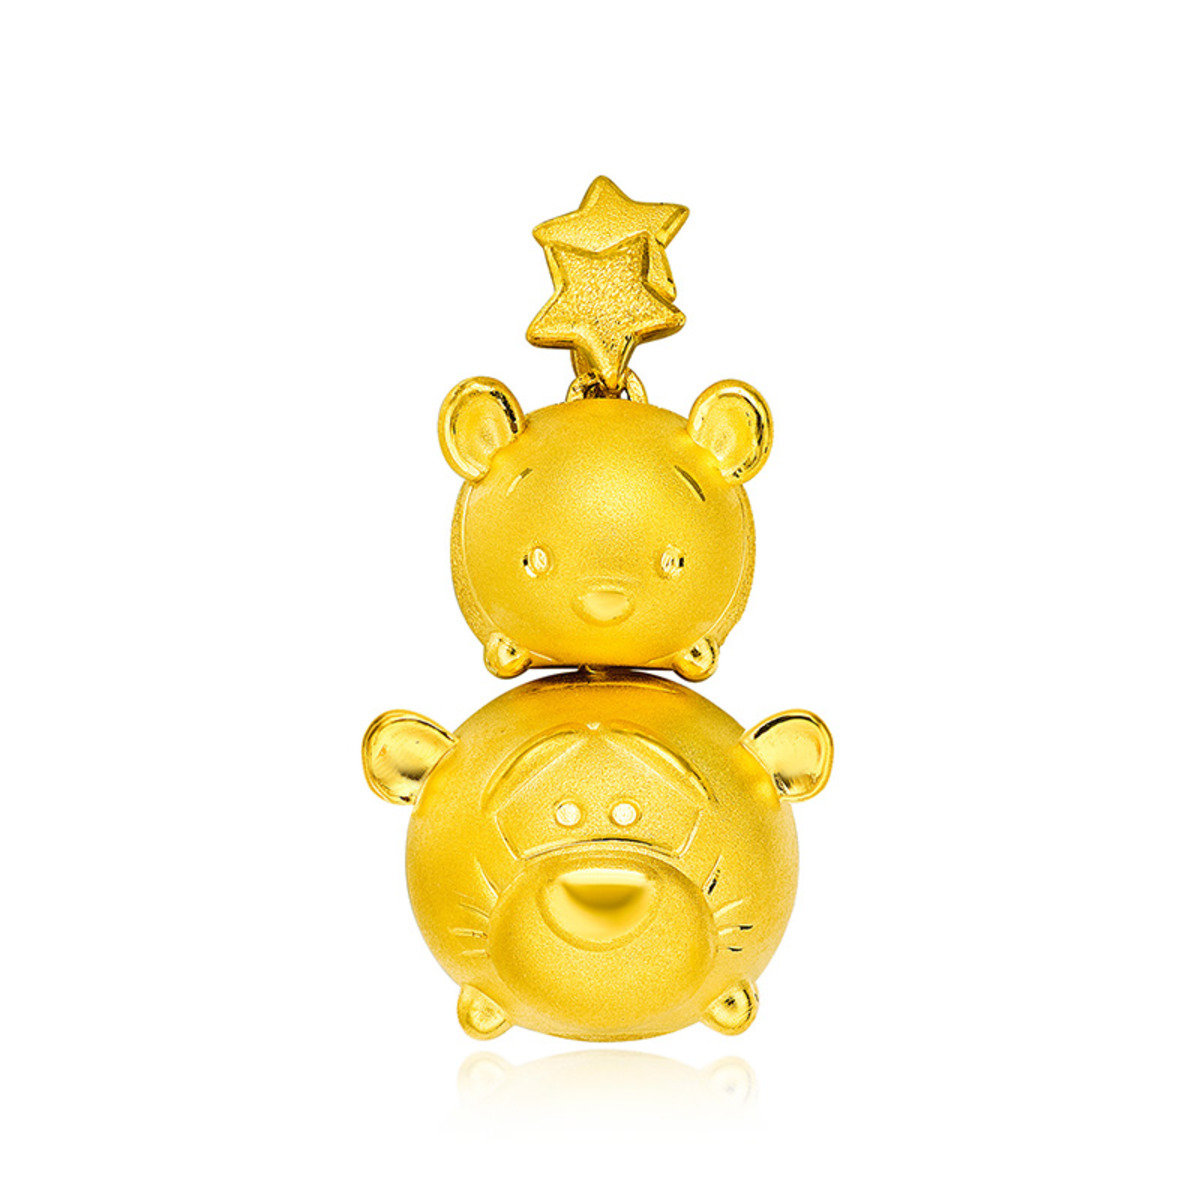 Disney Tsum Tsum Collection: Winnie the pooh & Tigger 999 Gold Pendant